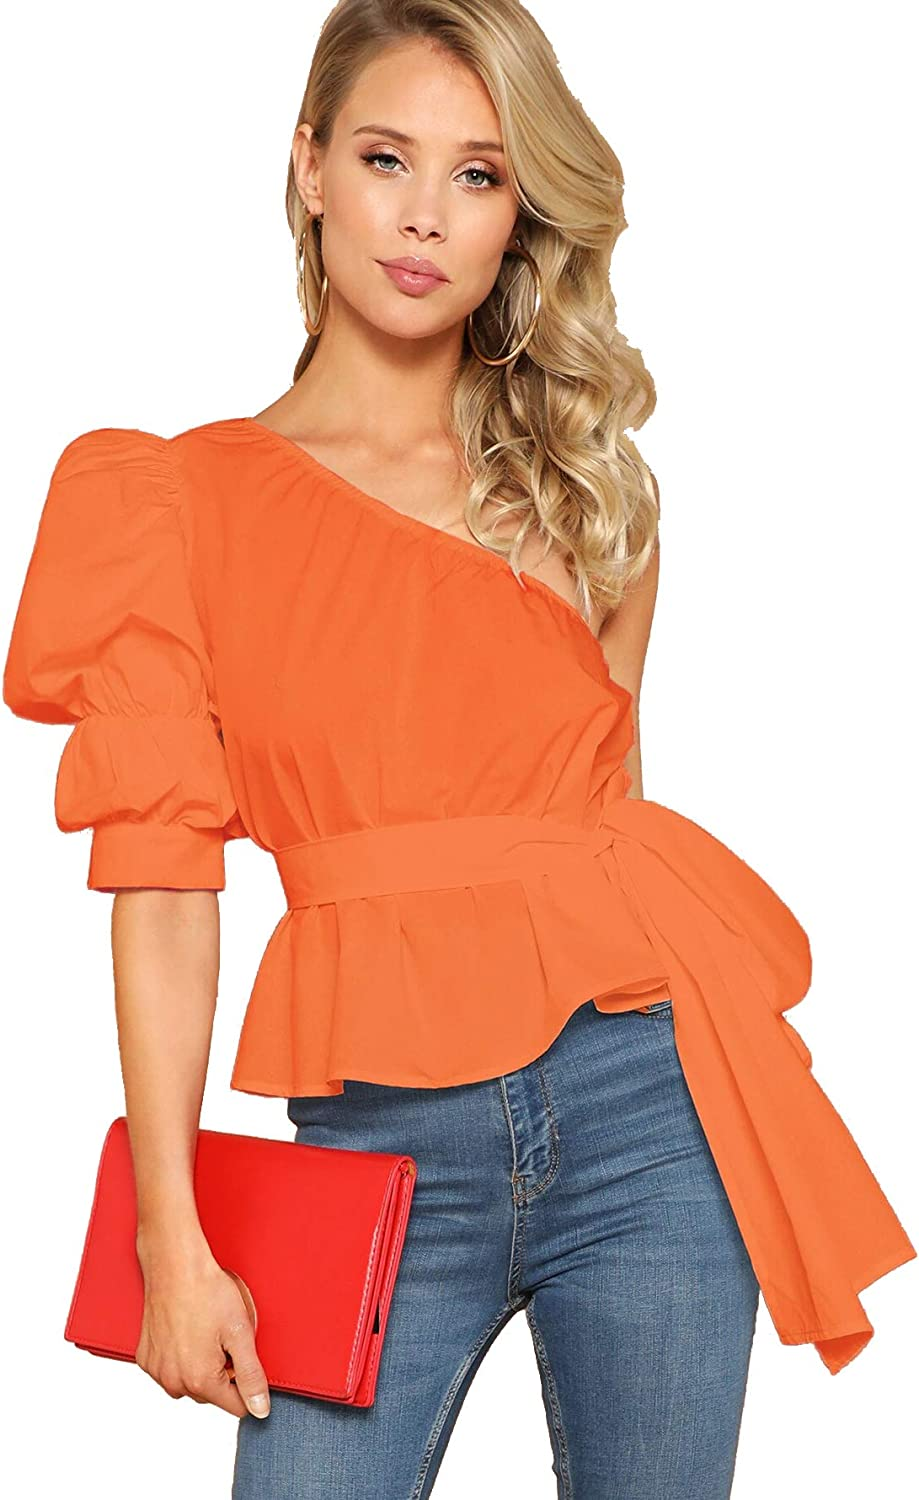 Romwe Women's One Shoulder Short Puff Sleeve Self Belted Solid Blouse Top